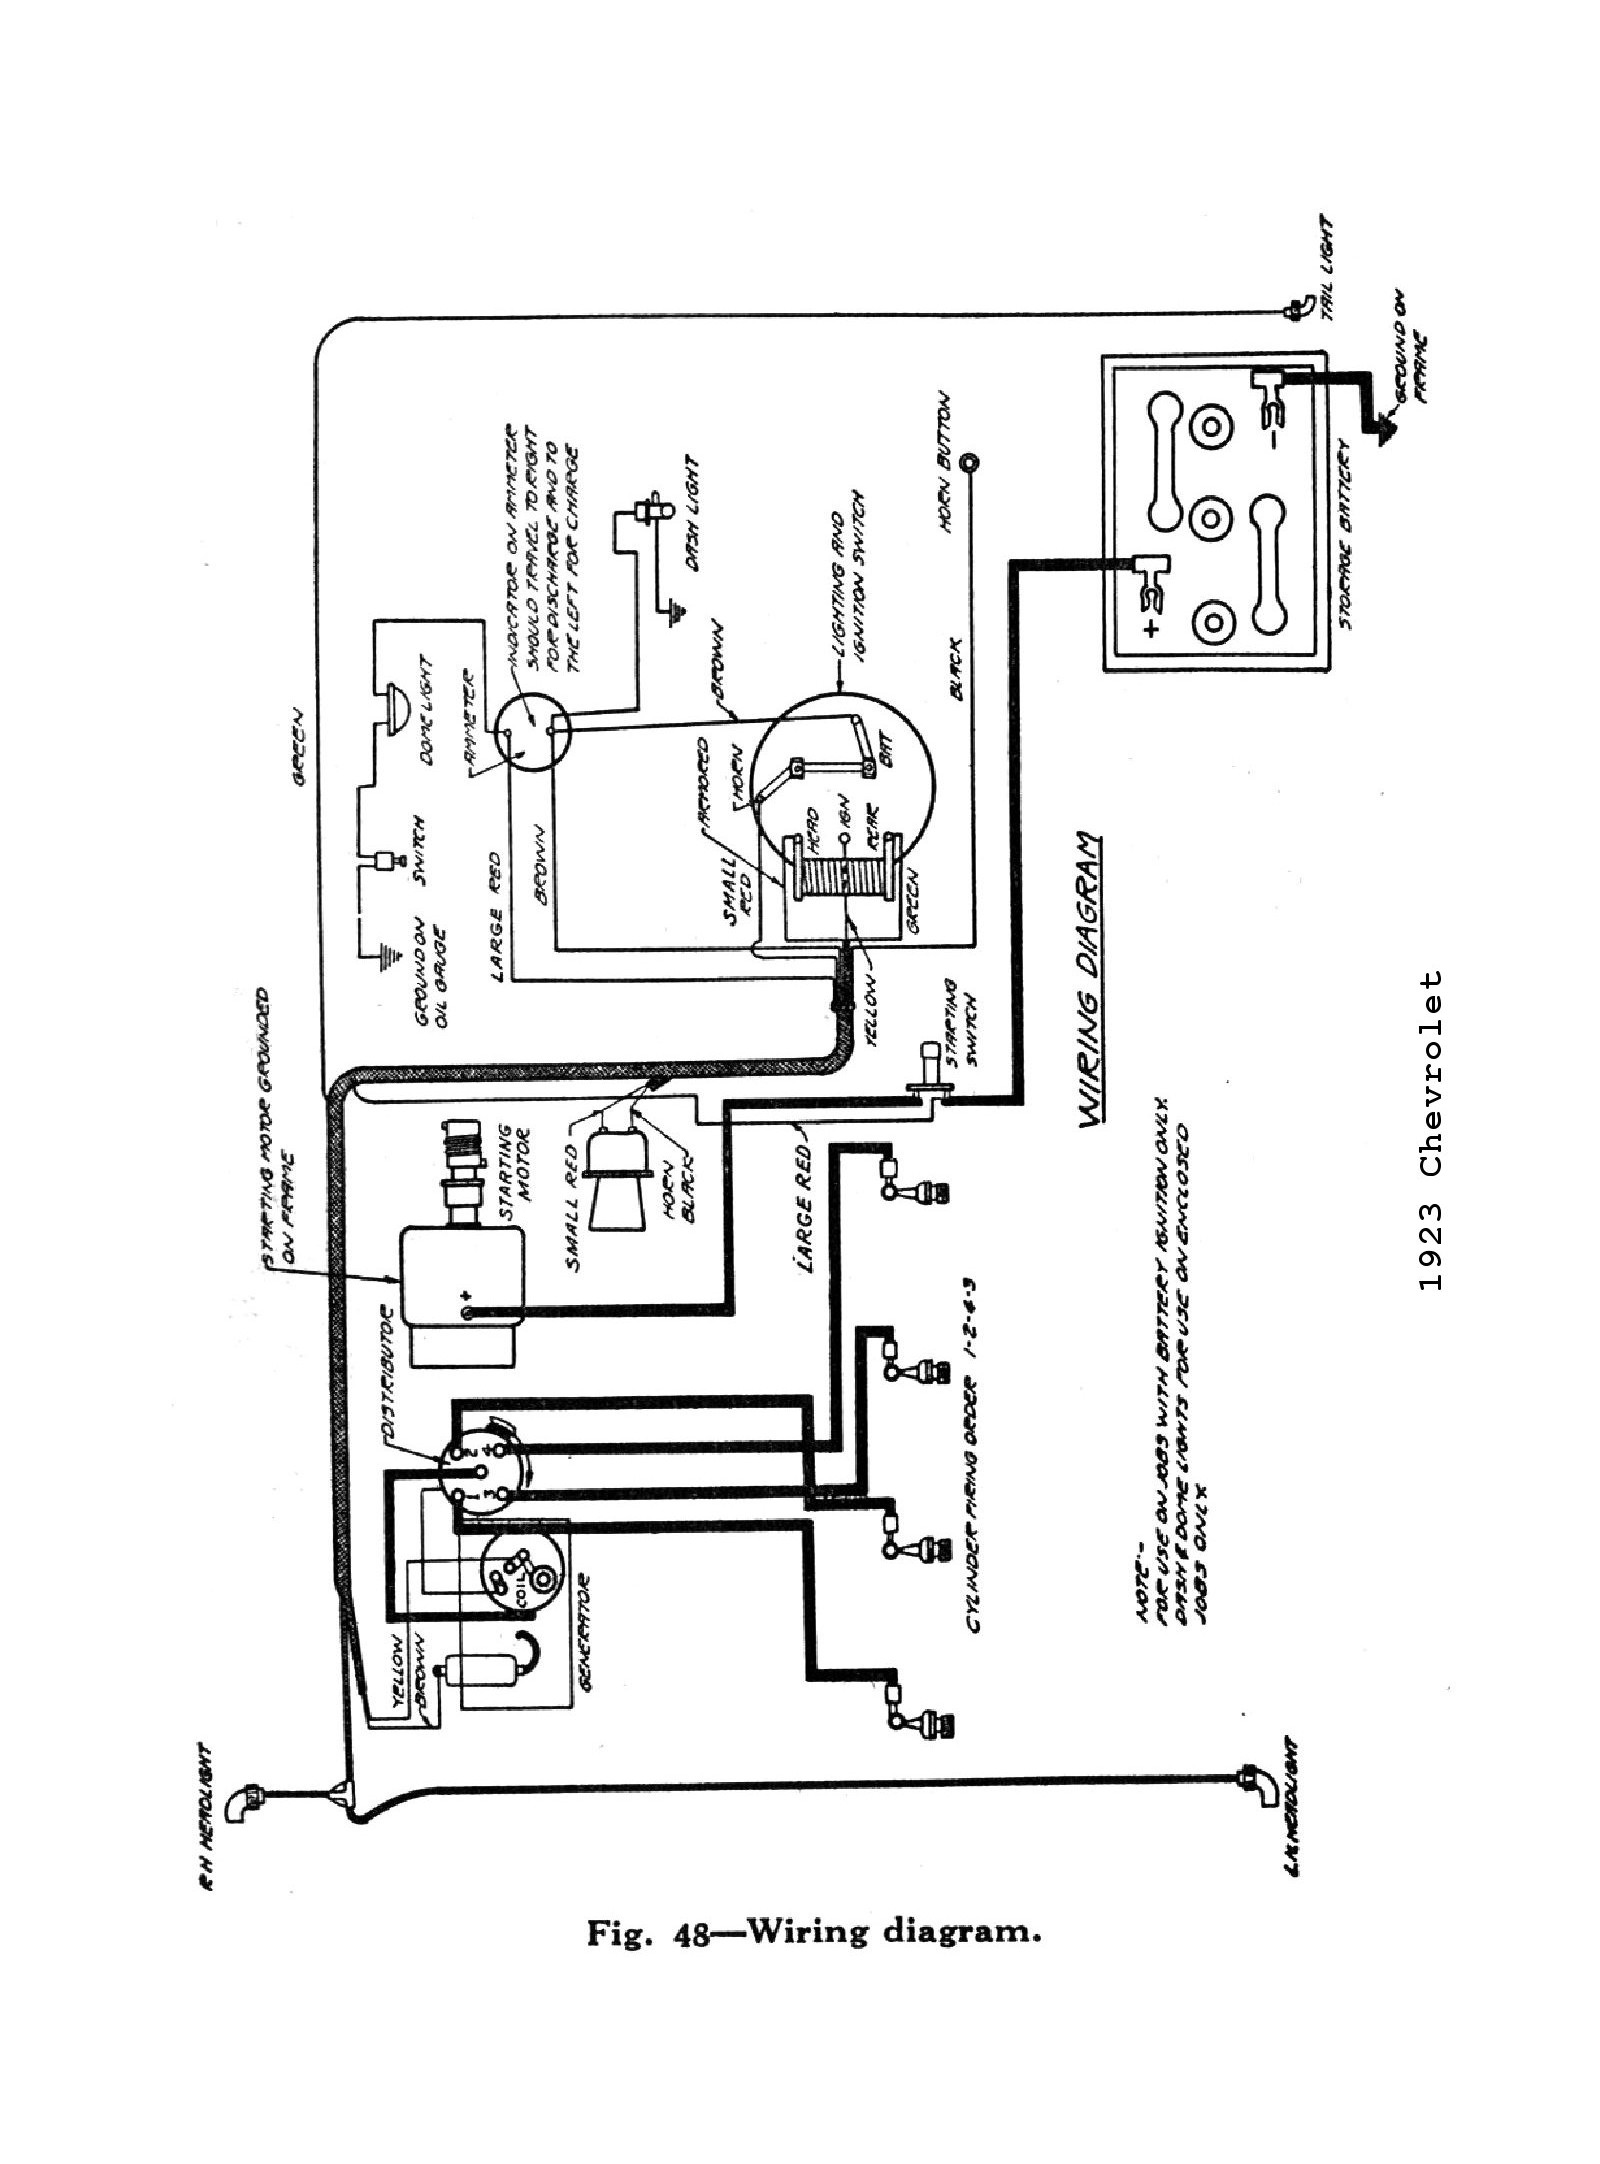 1959 Lincoln Welder Engine Wiring Diagram Library Of Diagrams Sa 200 1960 Enthusiast U2022 Rh Rasalibre Co Arc Sa200